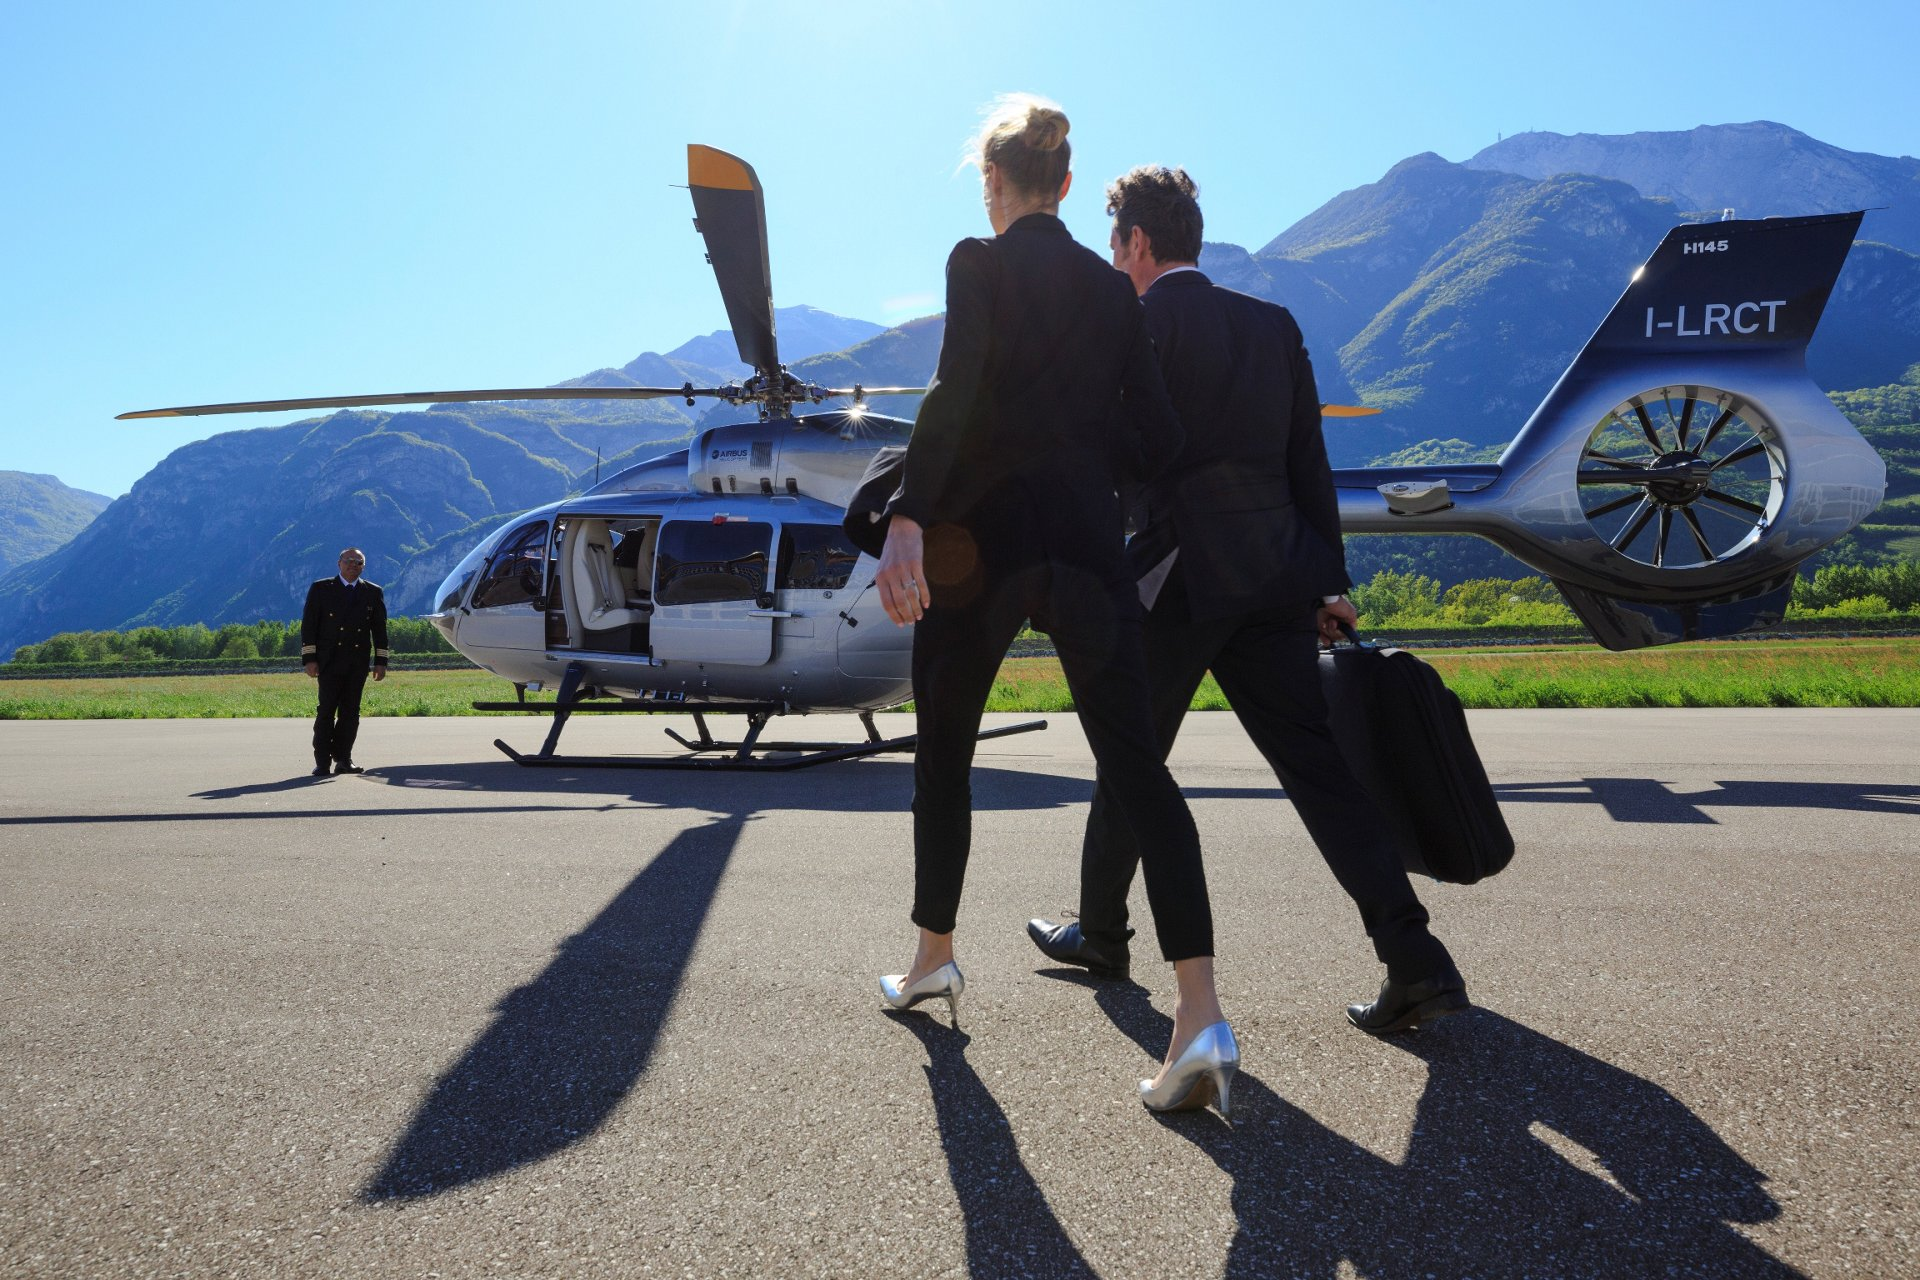 New Zealand VIP and charter operator Advanced Flight has become launch customer for the Airbus ACH145 helicopter – the private and business aviation version of the new H145 announced at Heli-Expo.